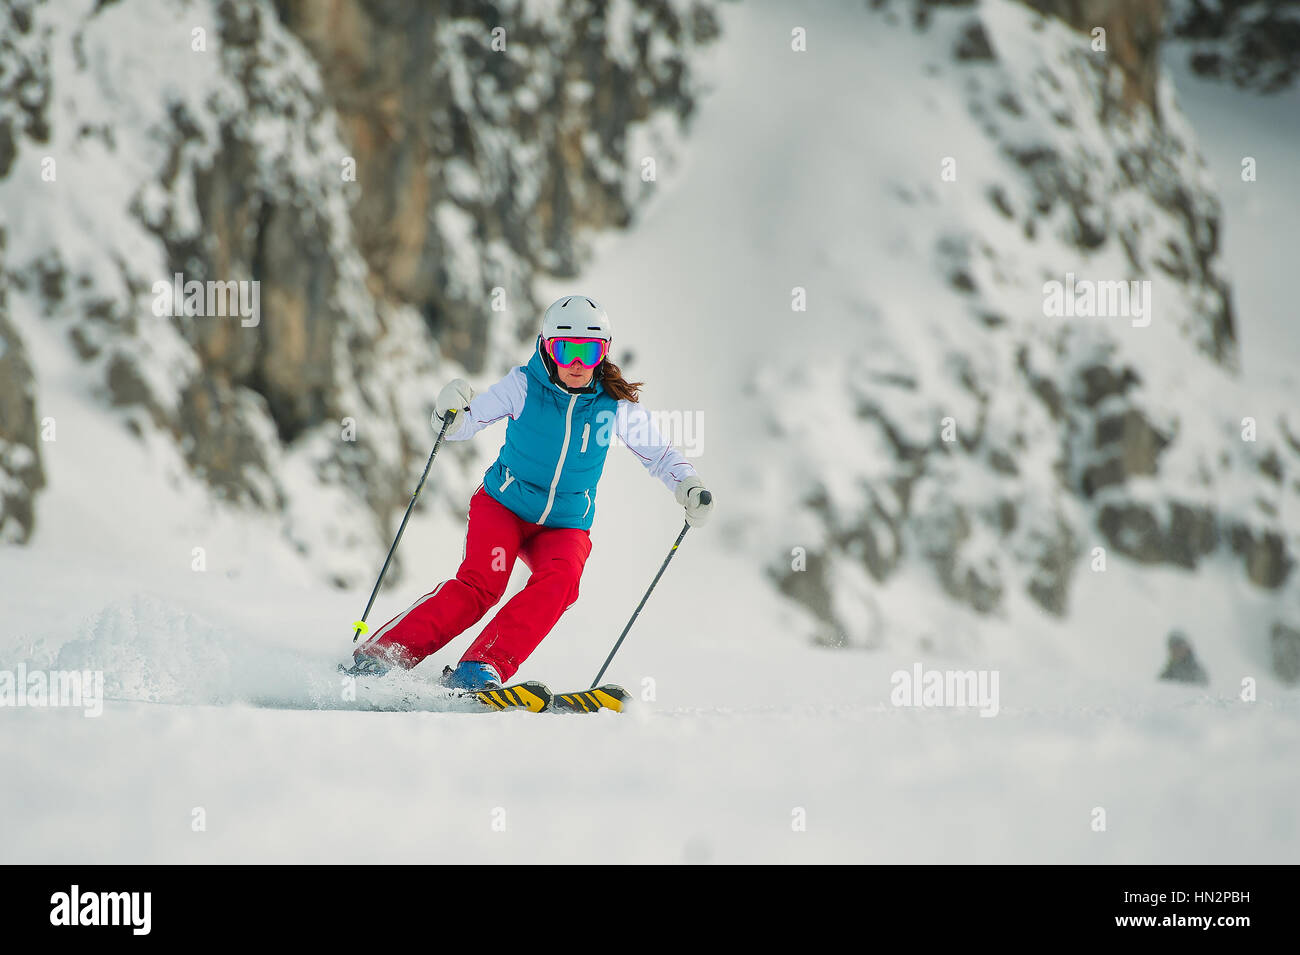 Young woman skier ago slalom - Stock Image